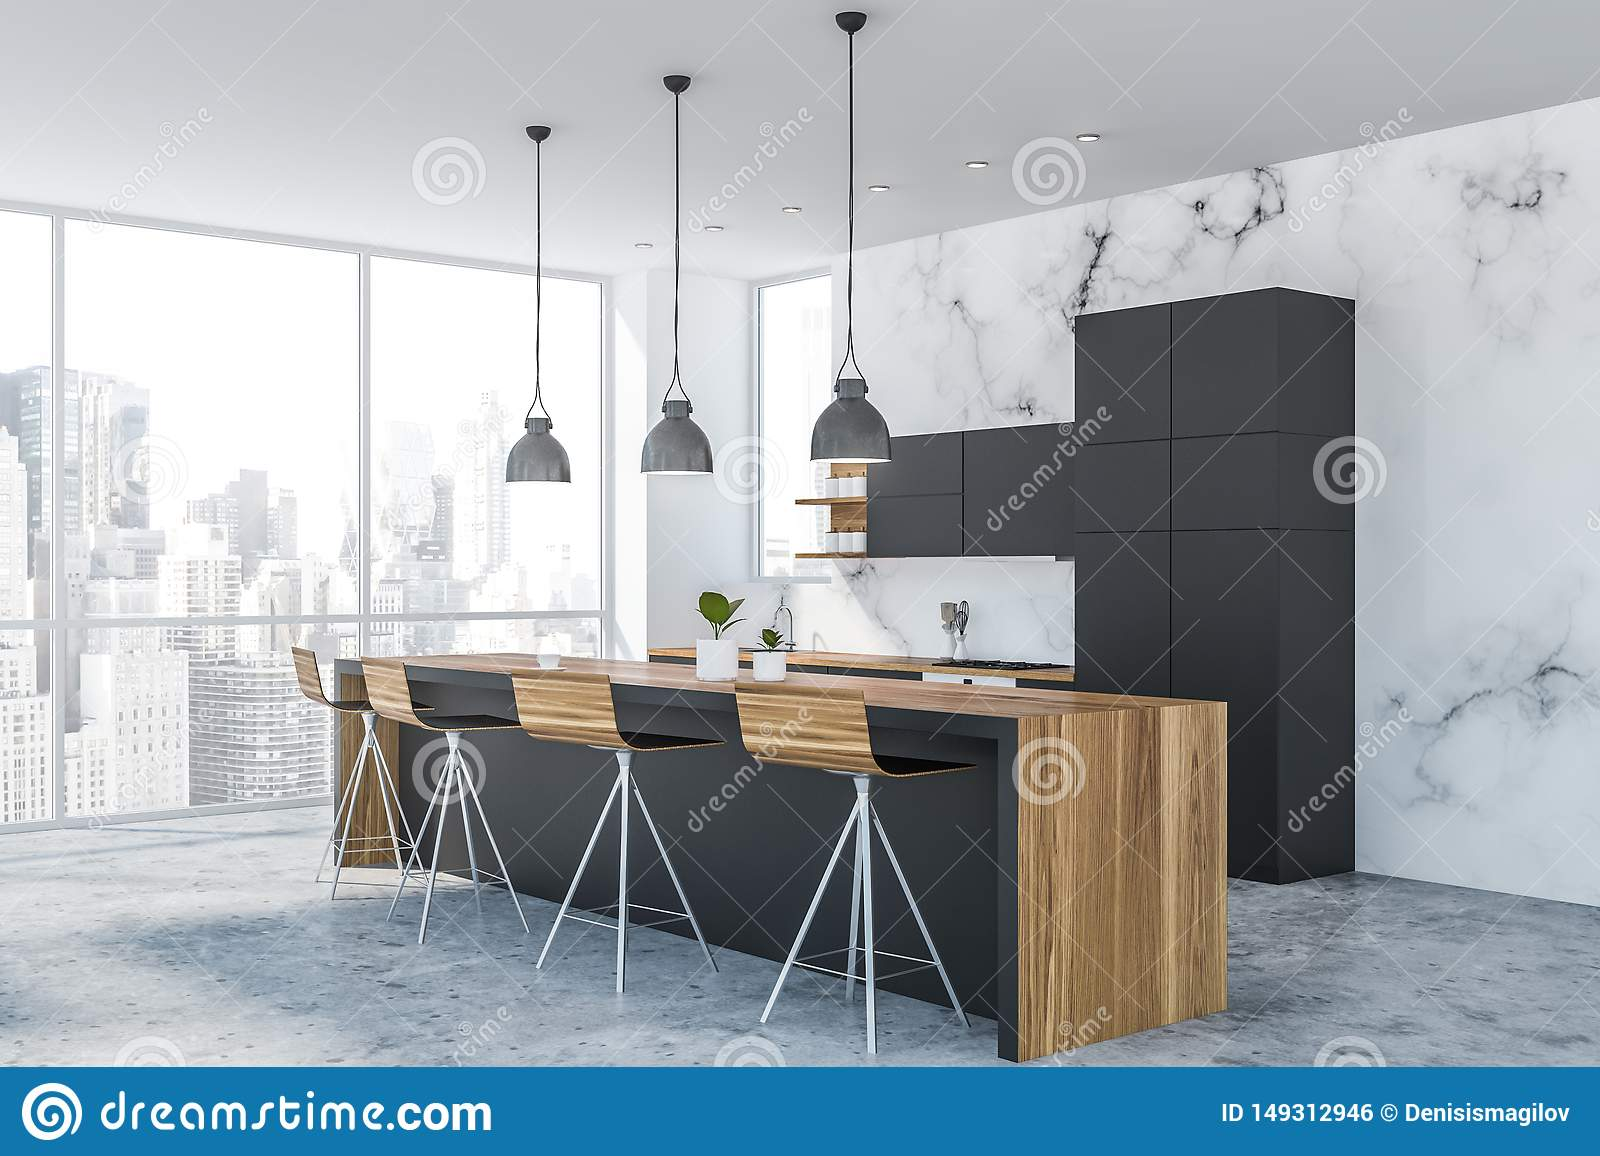 White Marble Kitchen Corner With Bar Stock Illustration Illustration Of Furniture Interior 149312946